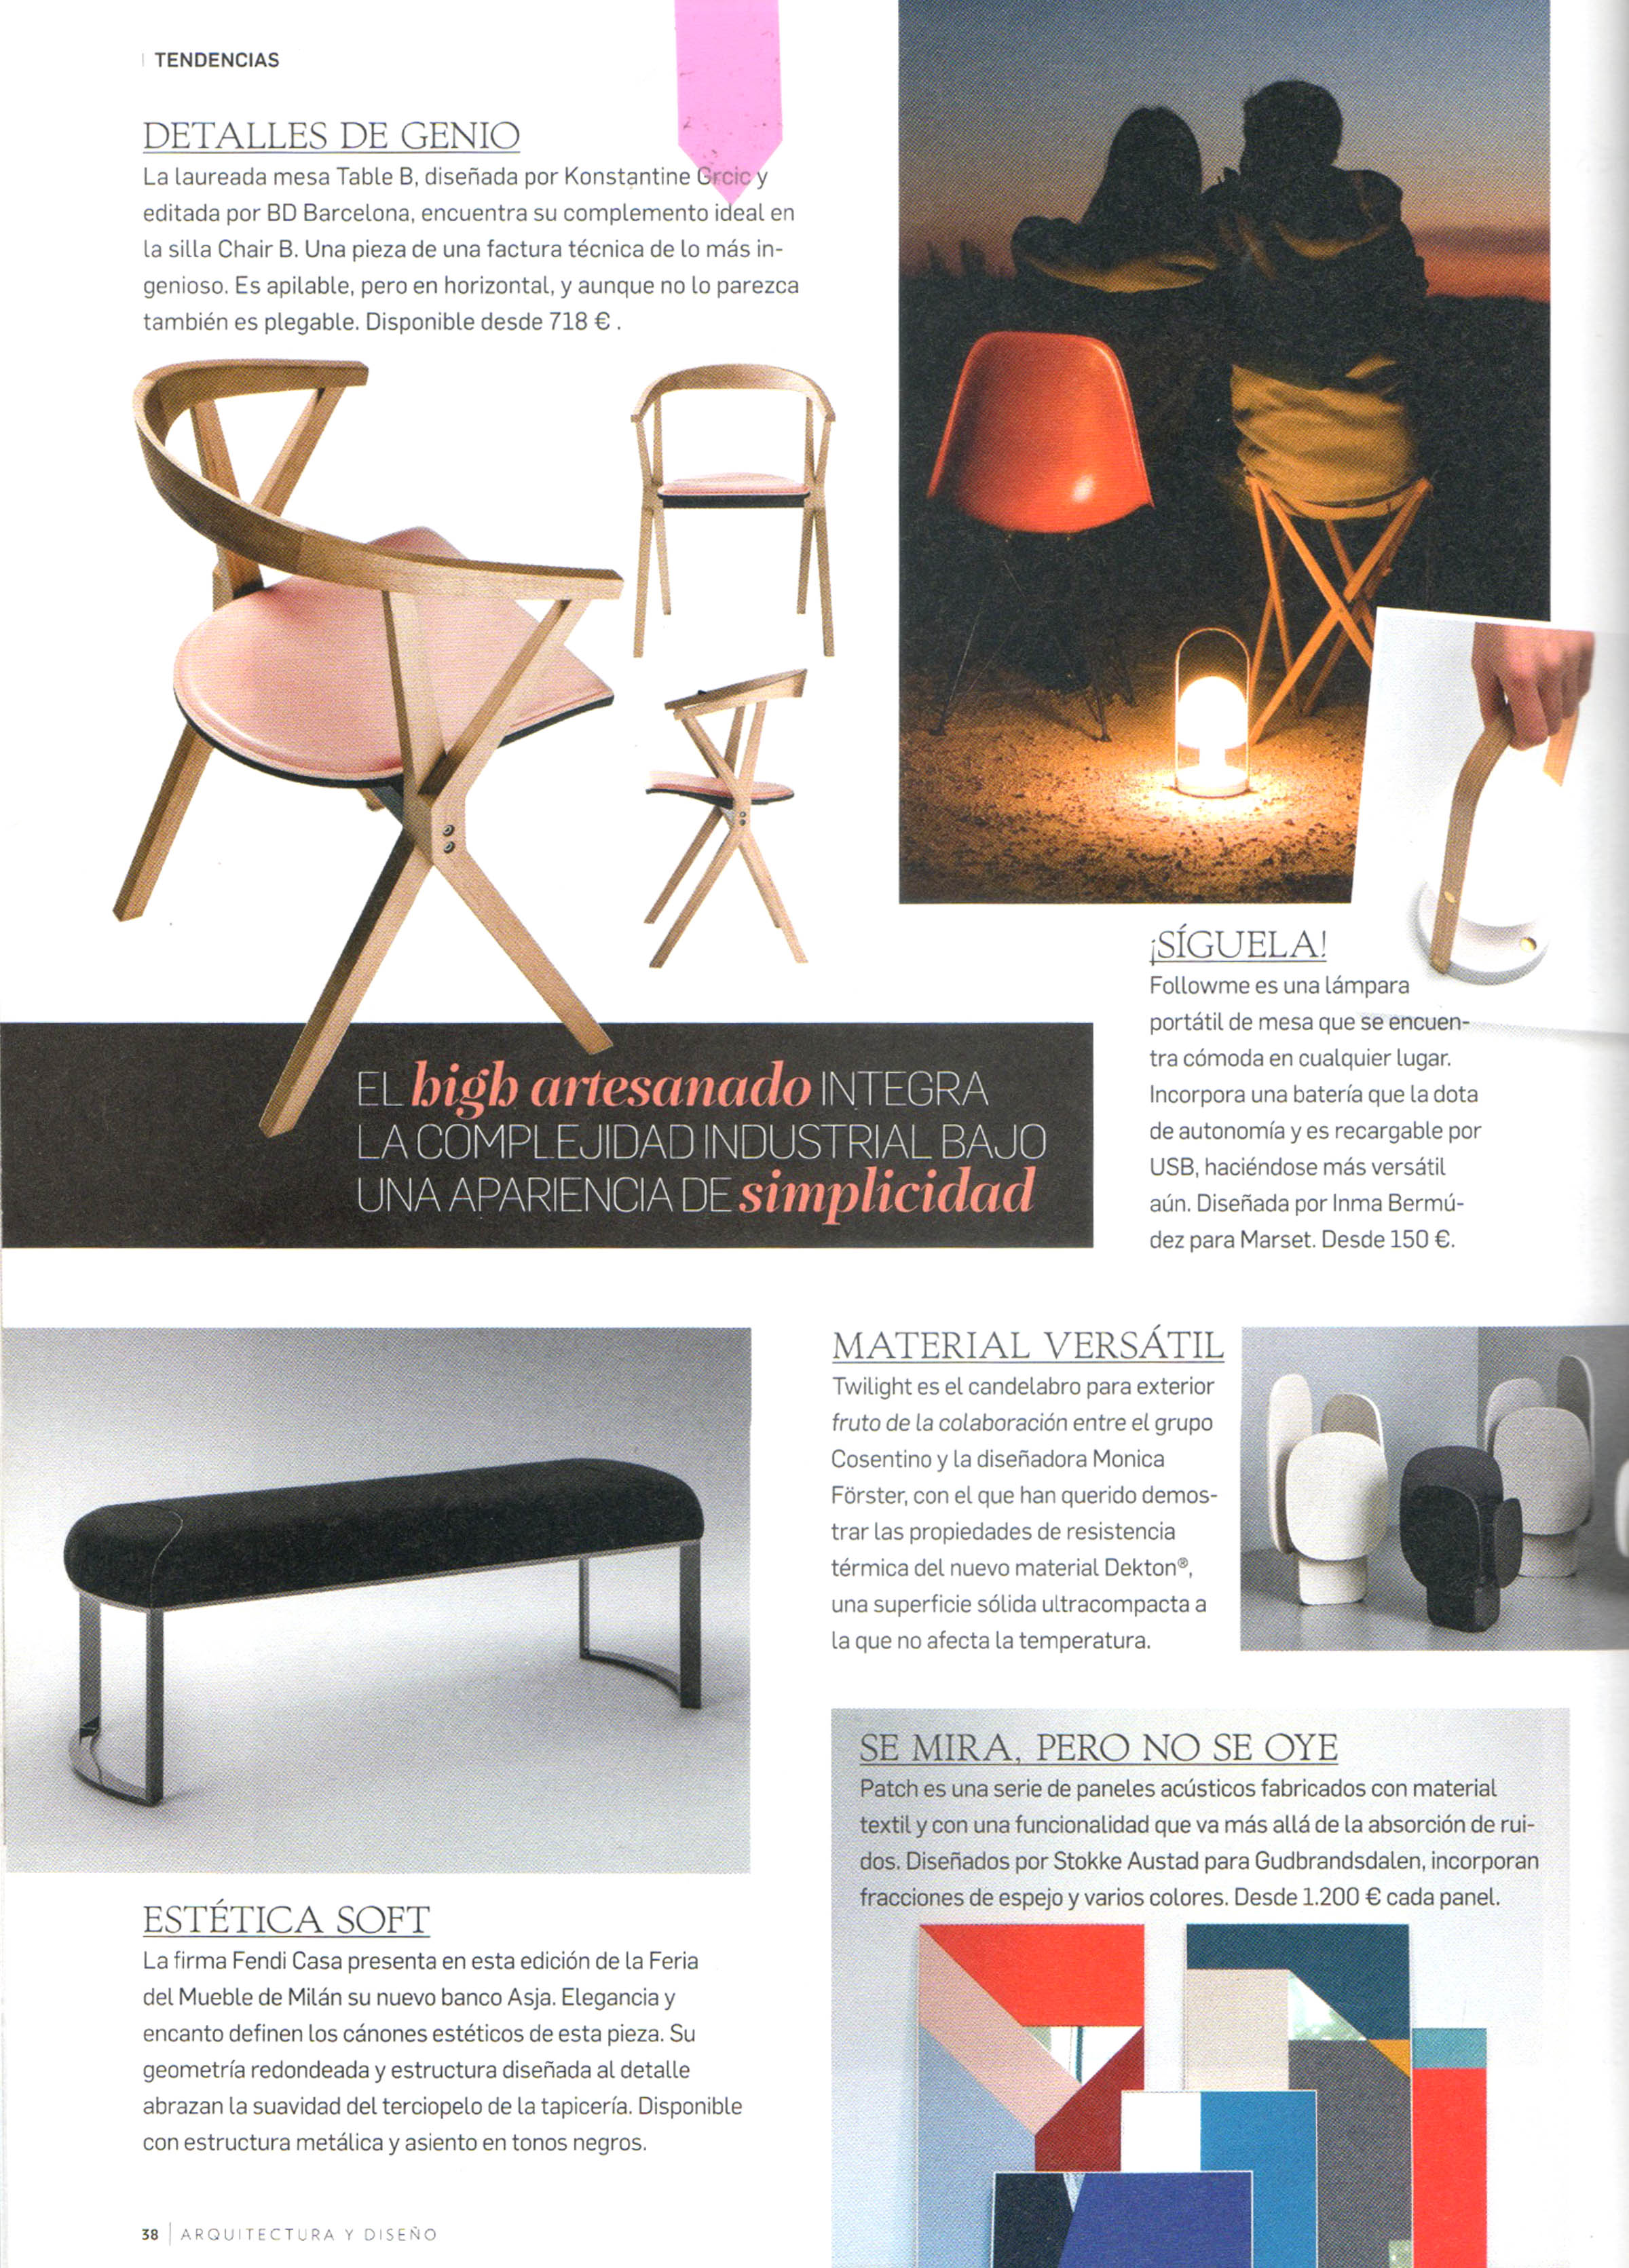 Studio Inma Berm Dez Press # Disenos Vor Muebles